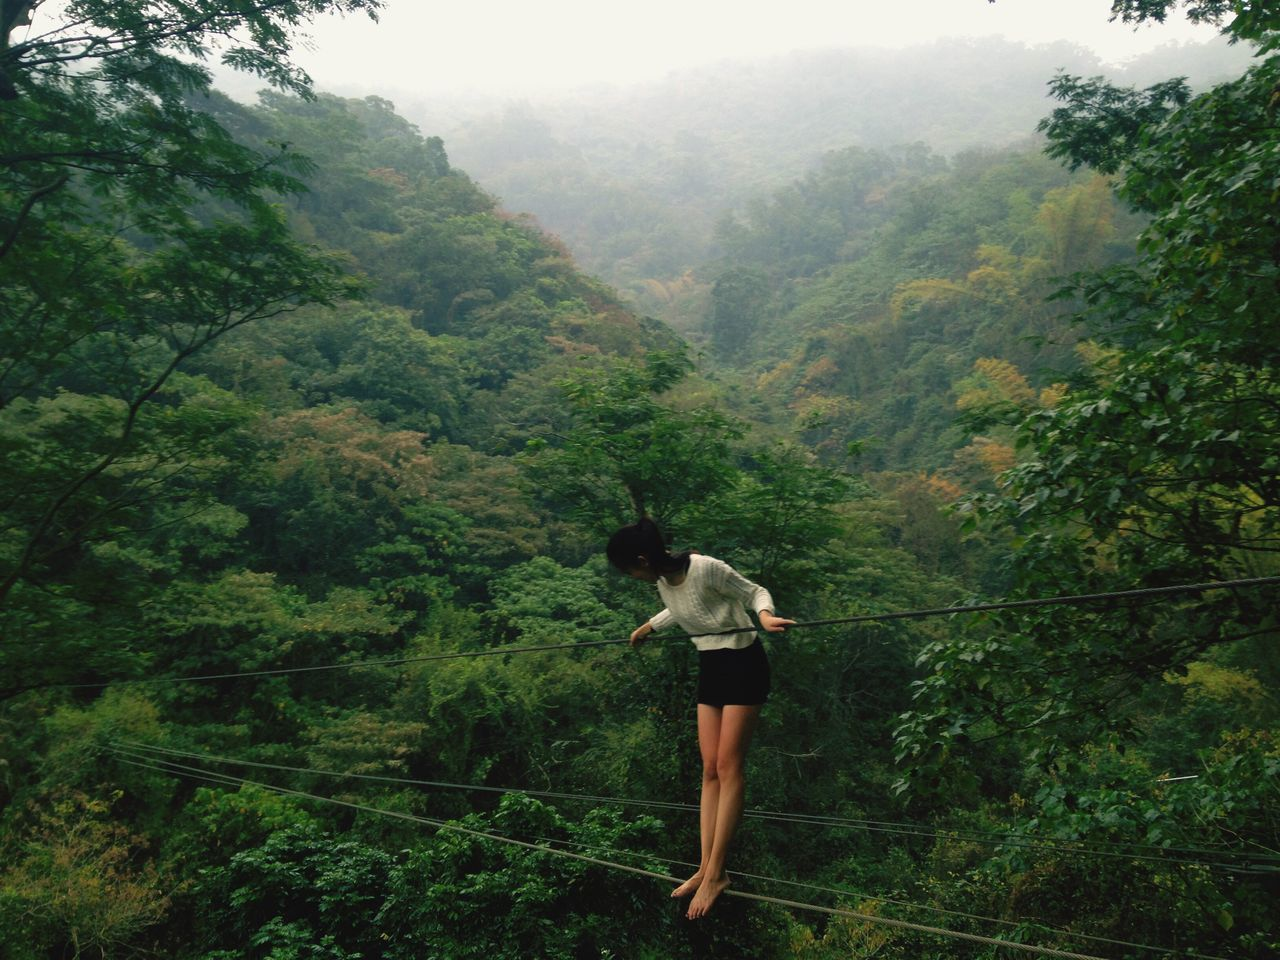 Full length of young woman standing on rope in forest